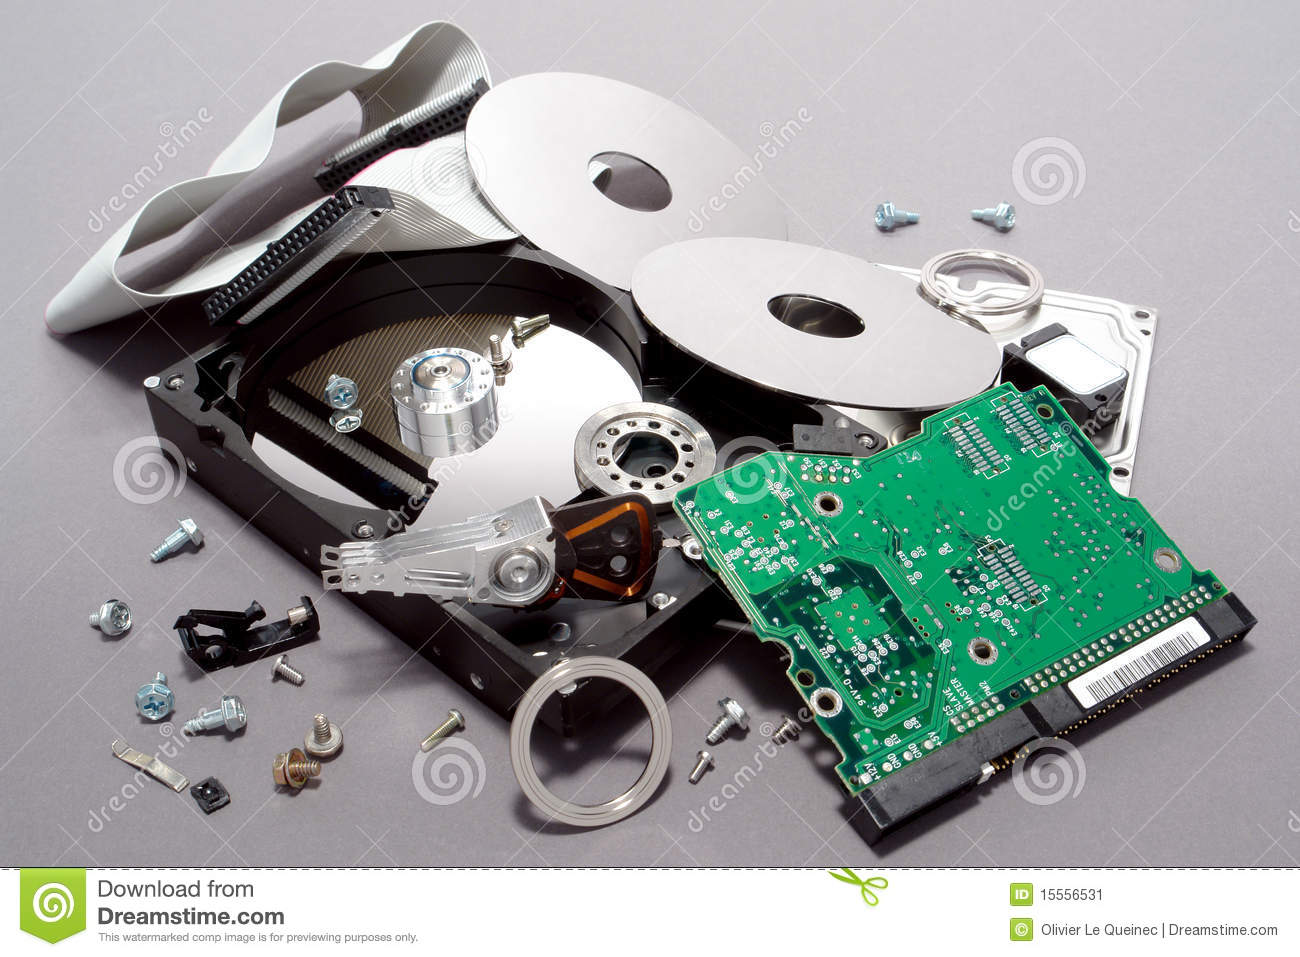 Computer Hard Drive Crashed And Broken Apart Stock Image Of Circuit Board Free Photo Hd Public Domain Pictures Royalty